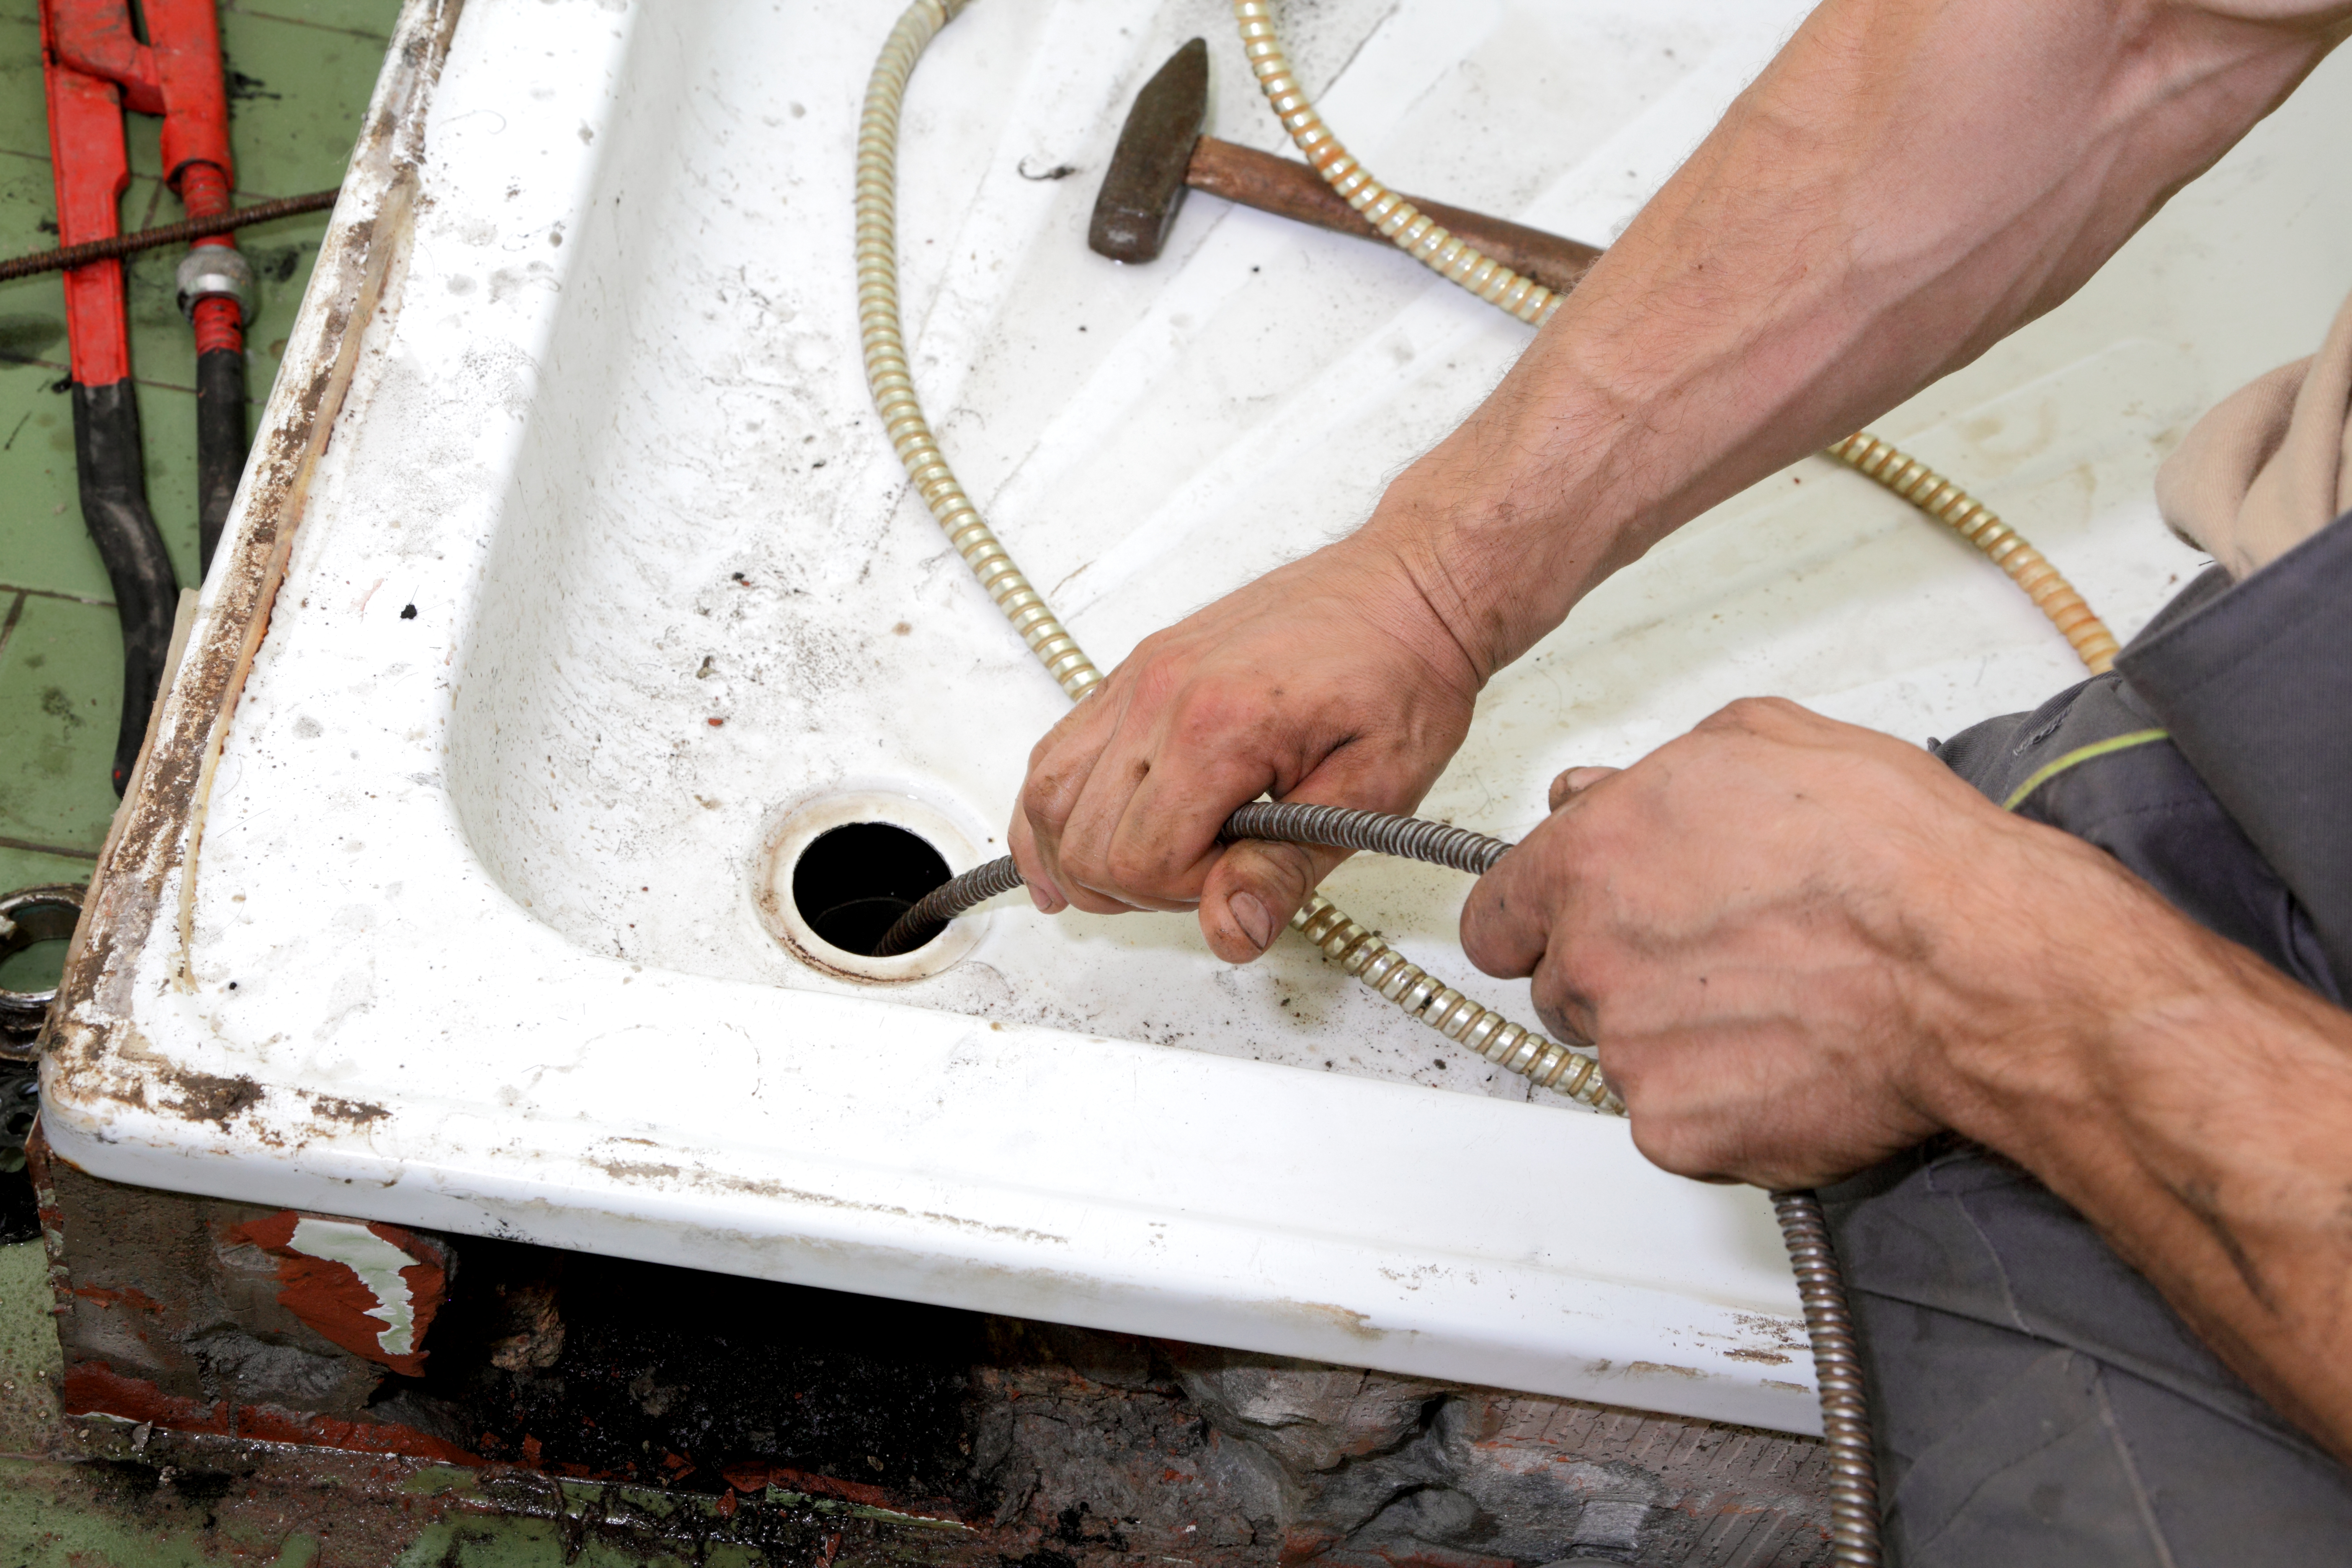 cleaning a clogged drain - d.i.y. or call a pro?